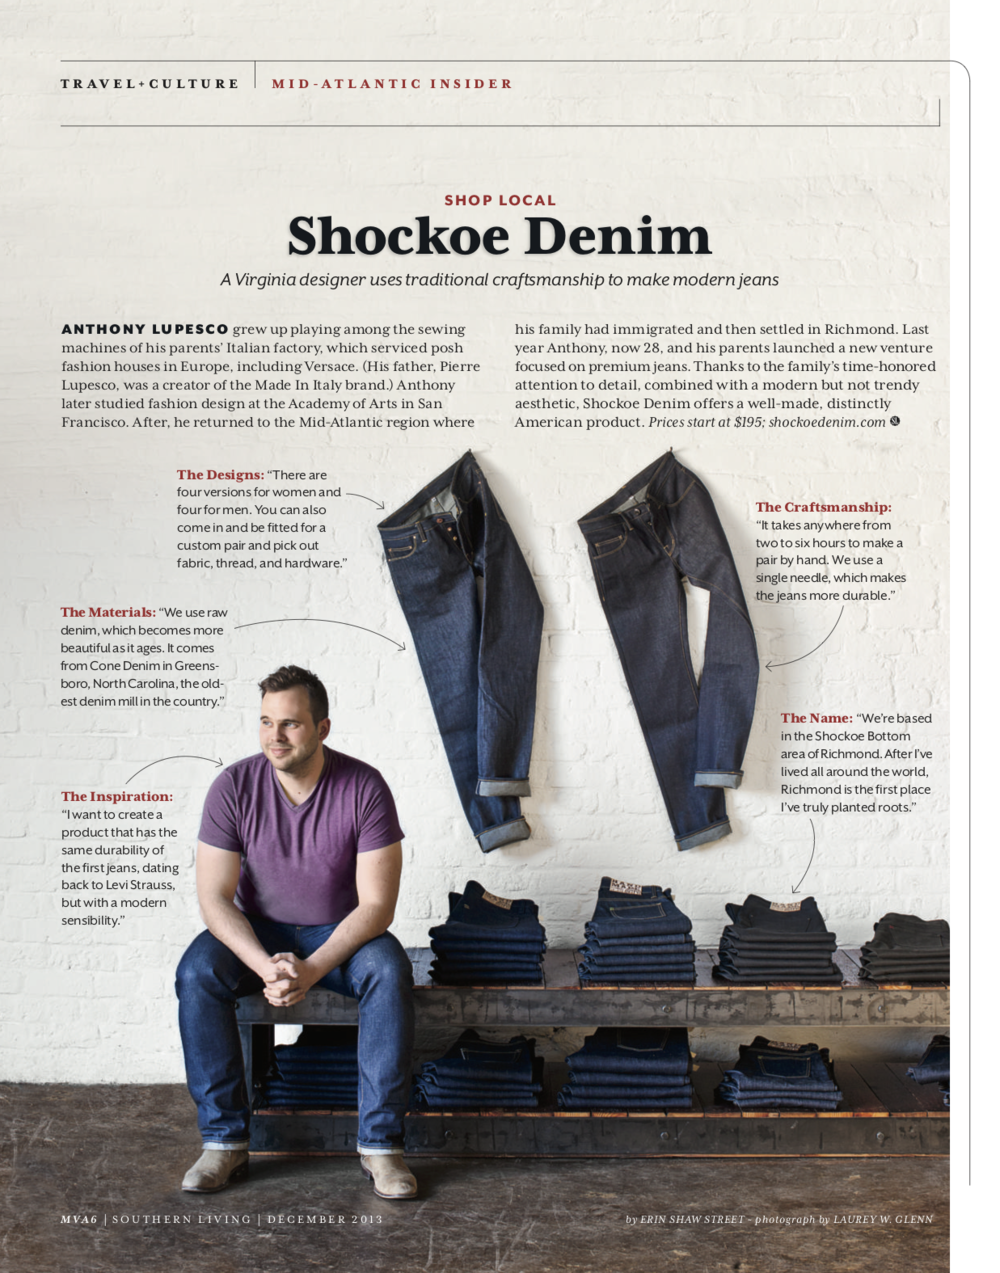 Southern Living: Shockoe Denim